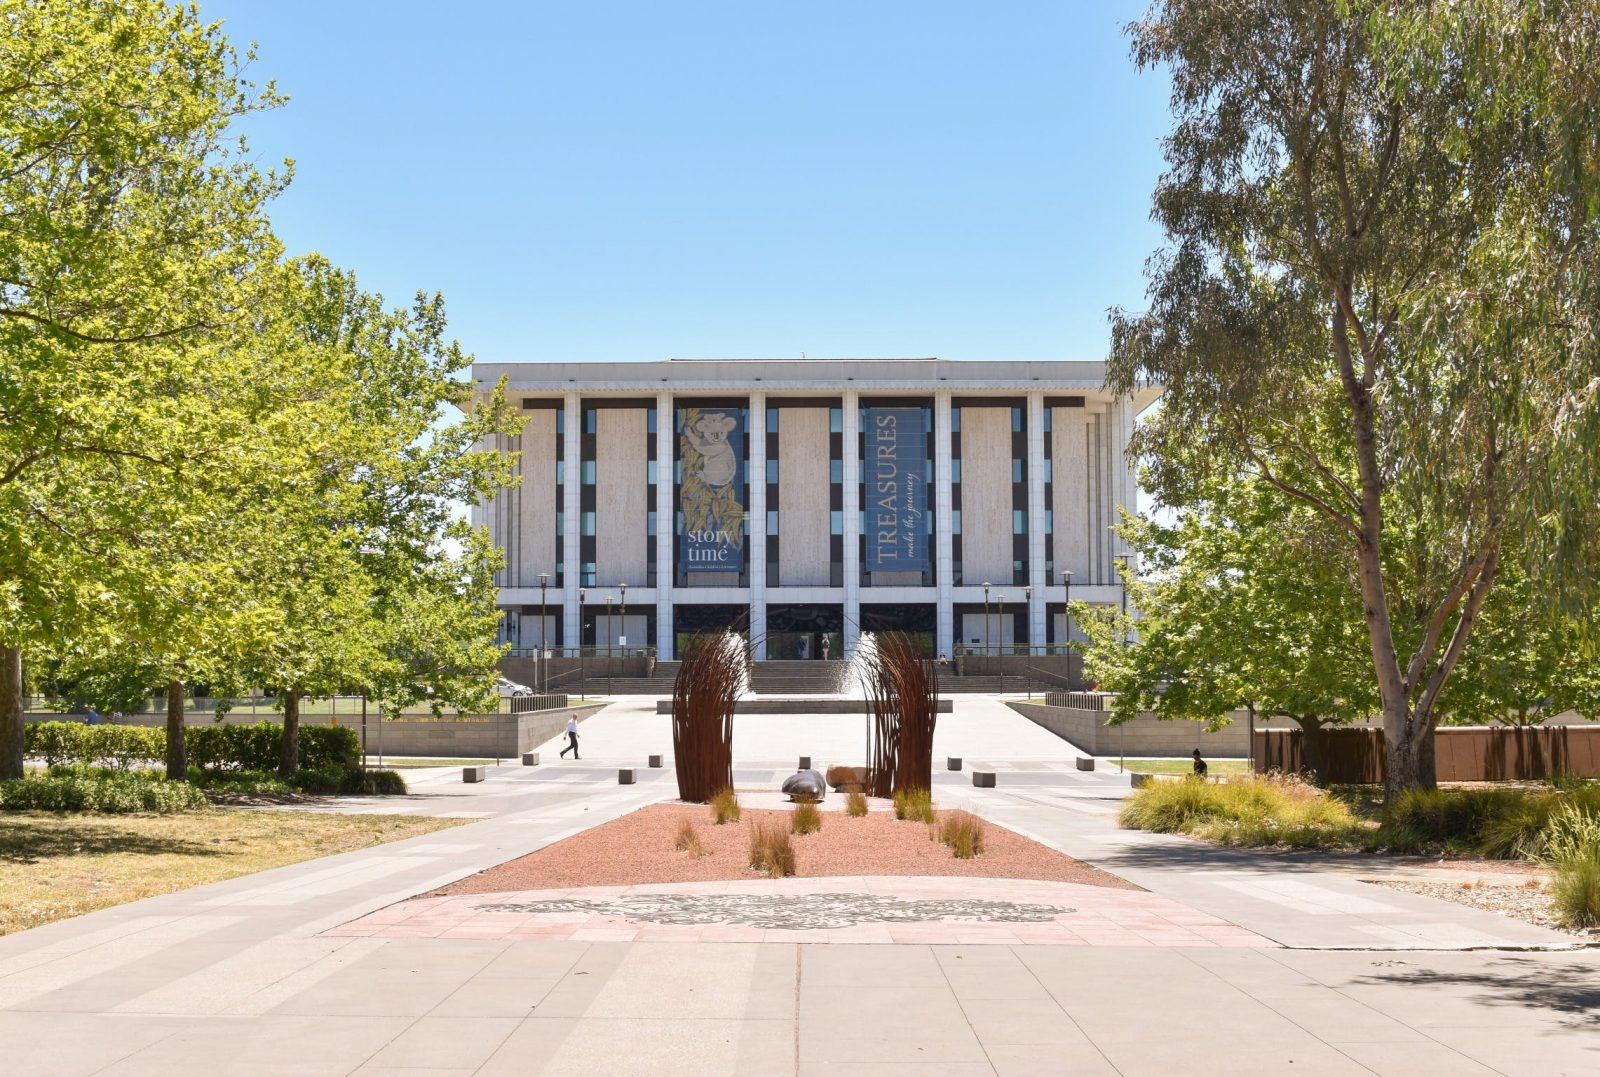 National Library of Australia building, Canberra